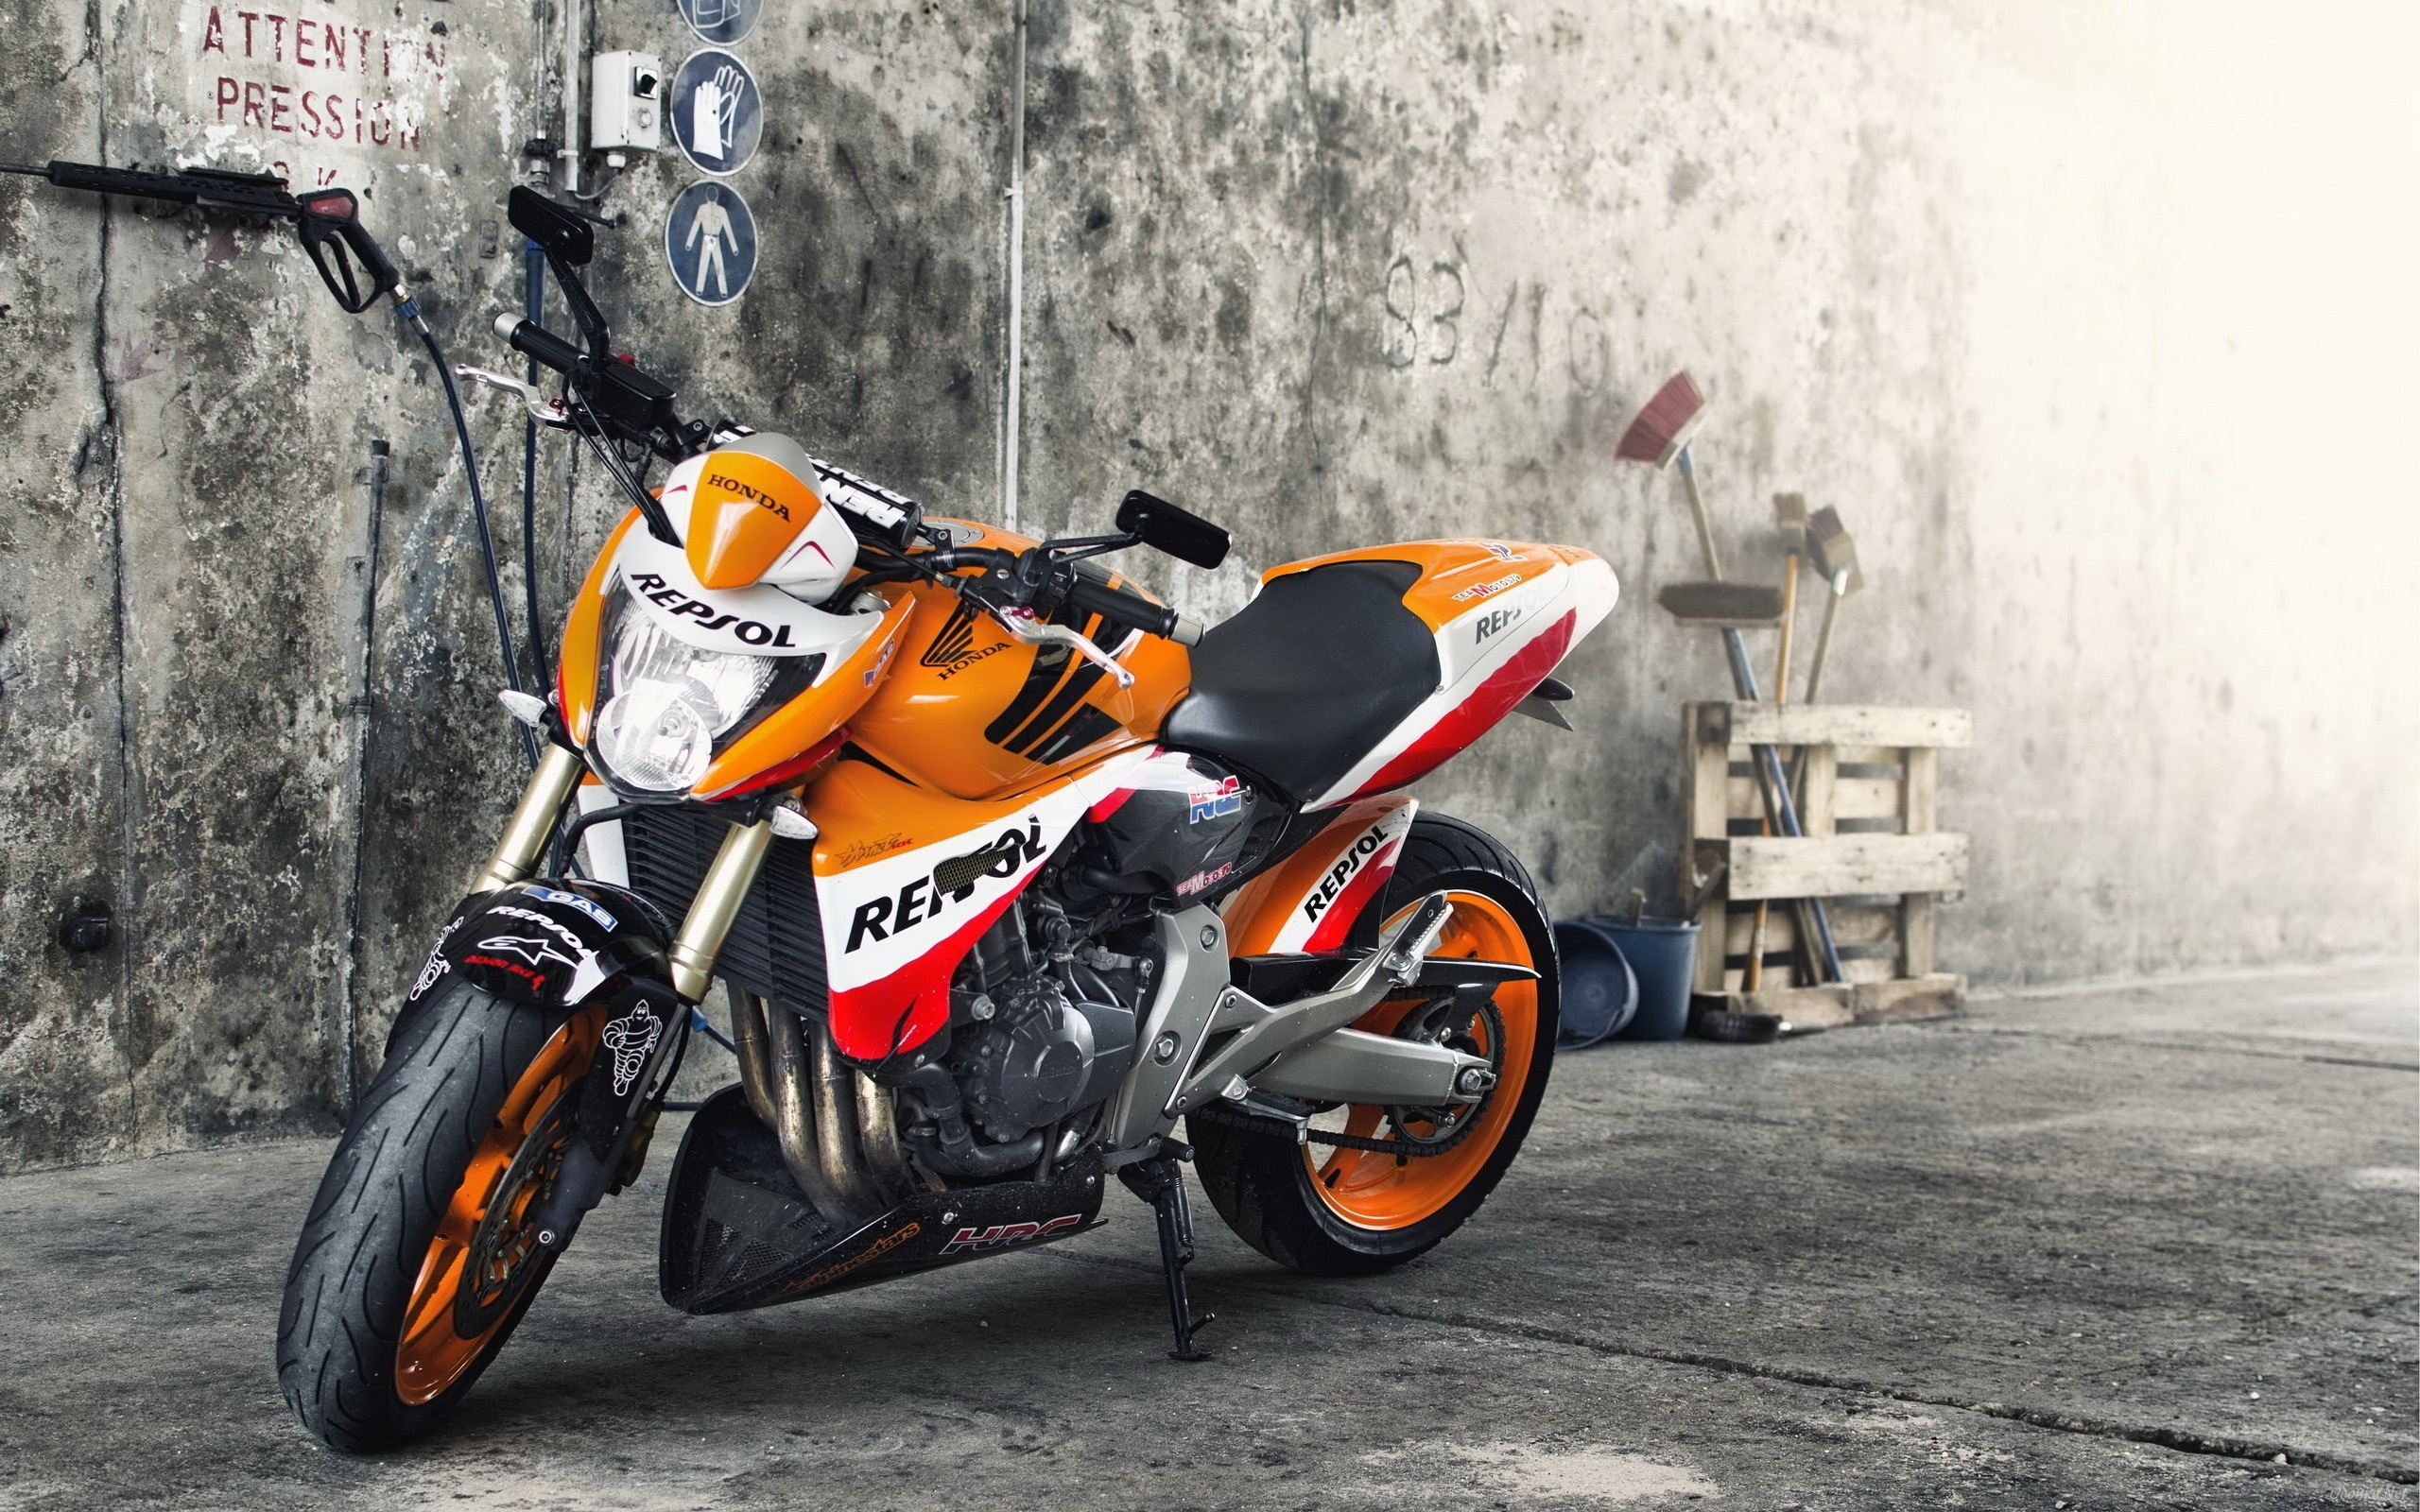 repsol motorcycle wallpaper background 49637